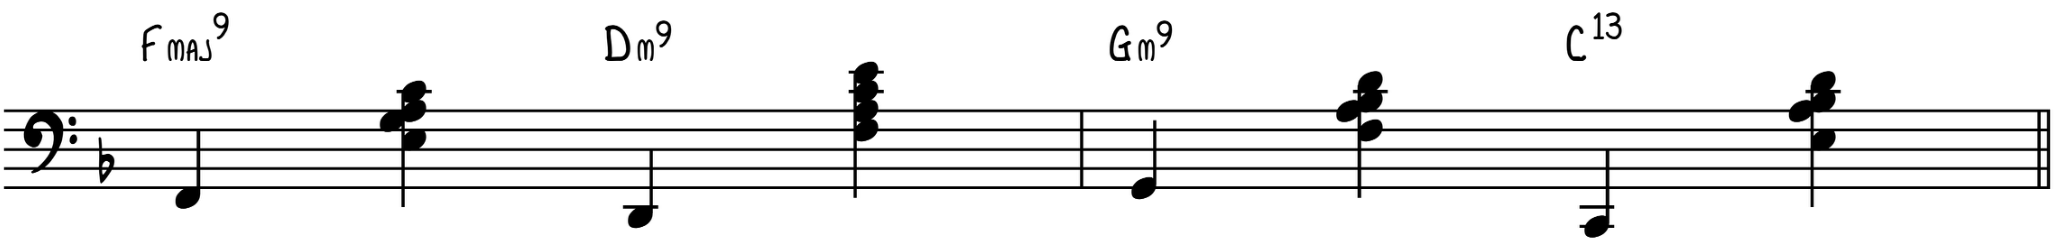 Turnaround Intermediate Accompaniment Pattern